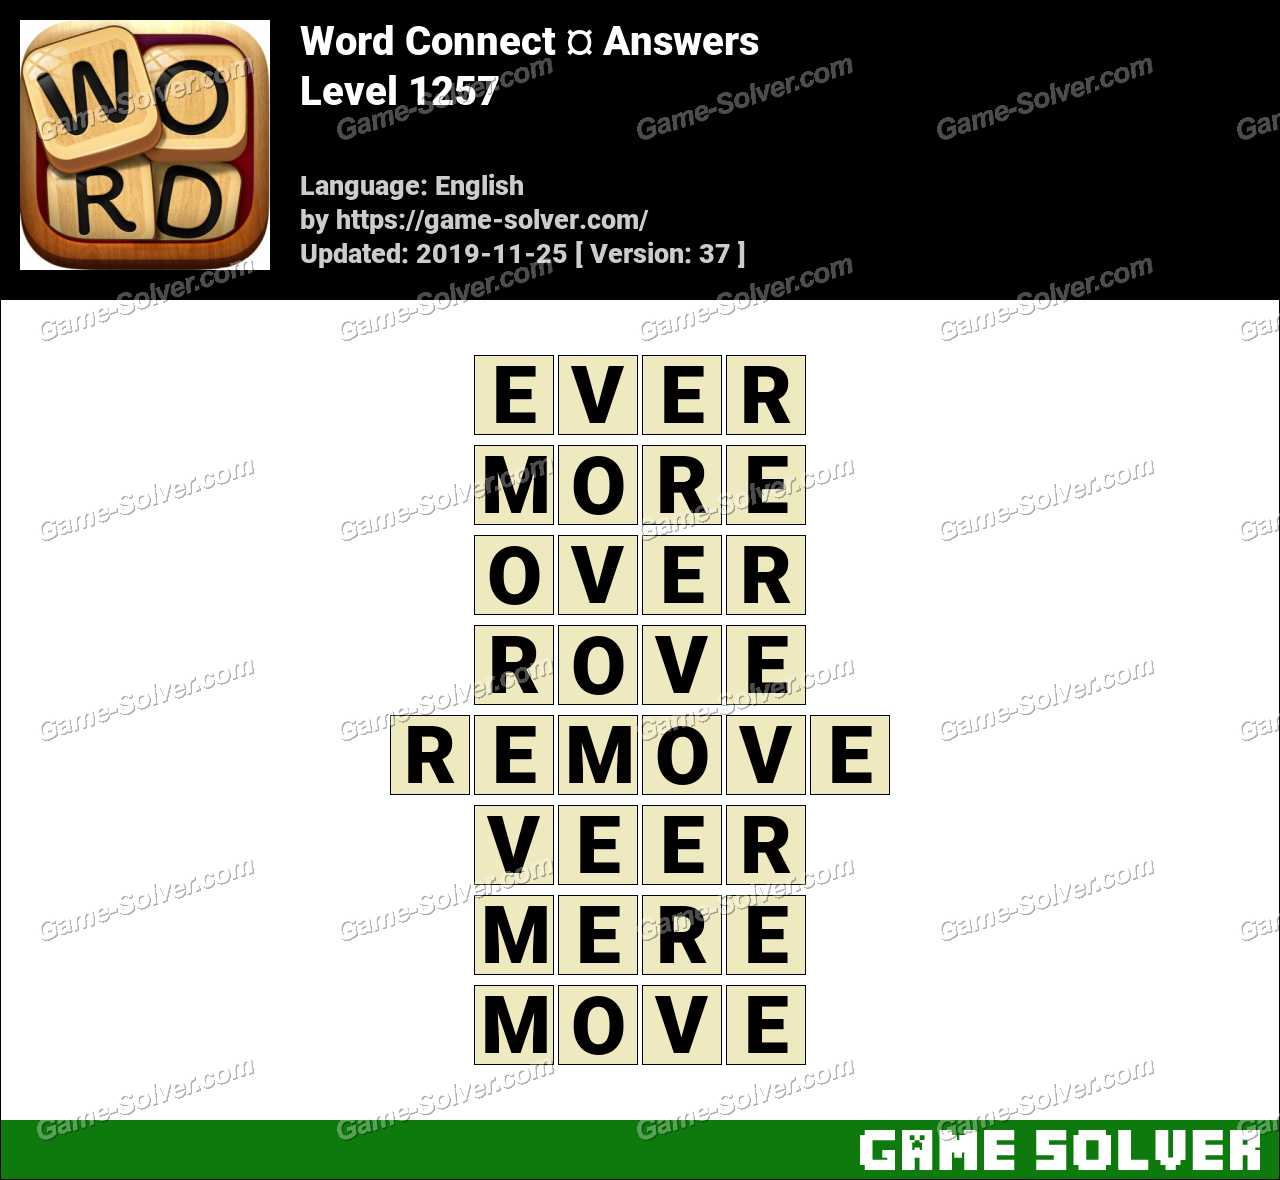 Word Connect Level 1257 Answers